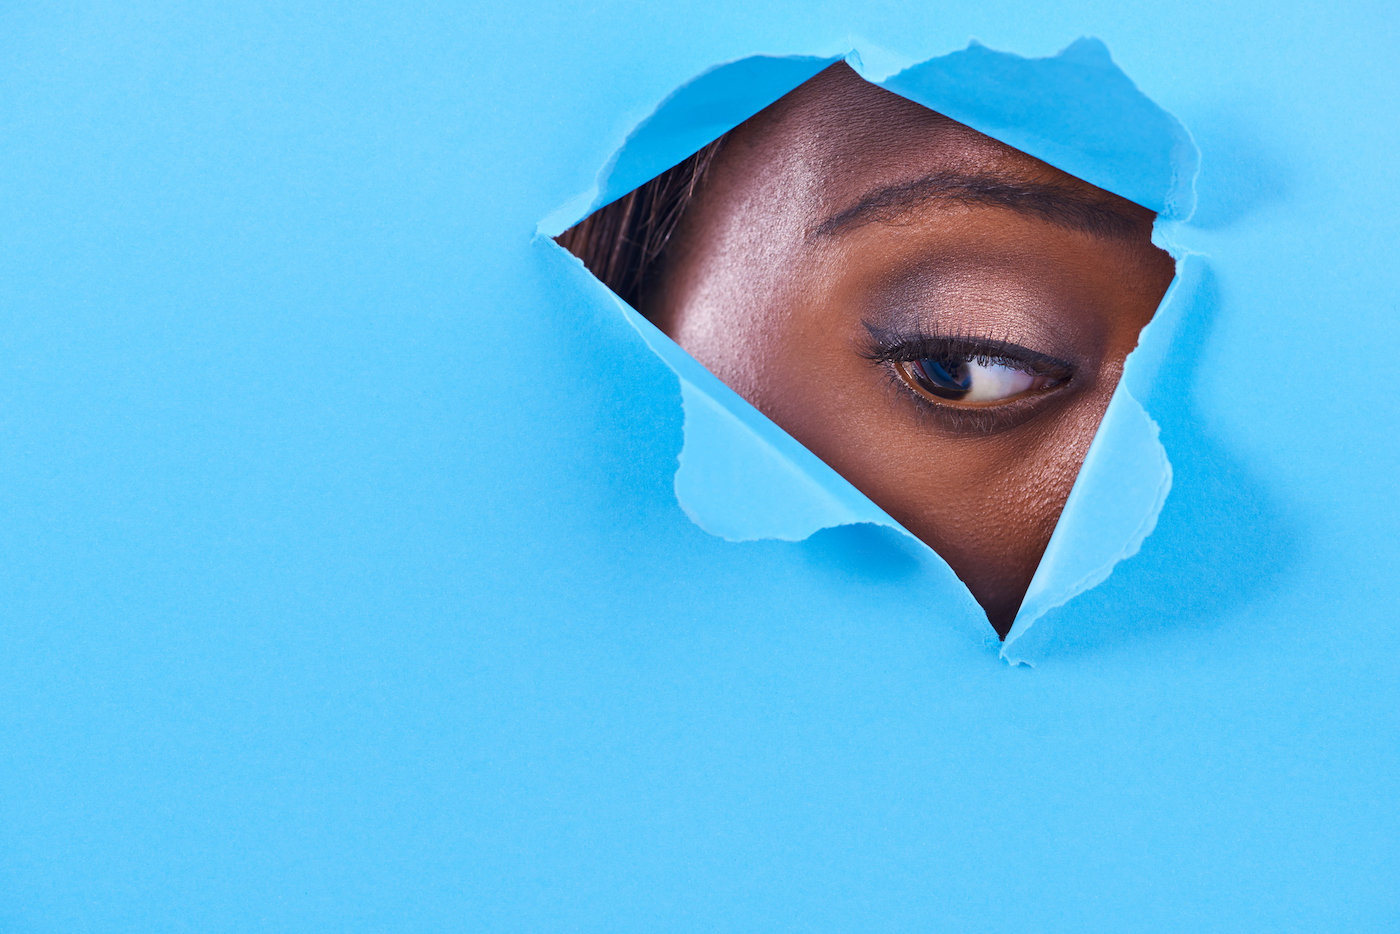 A view of a woman's eye looking through a hole in some colorful paper